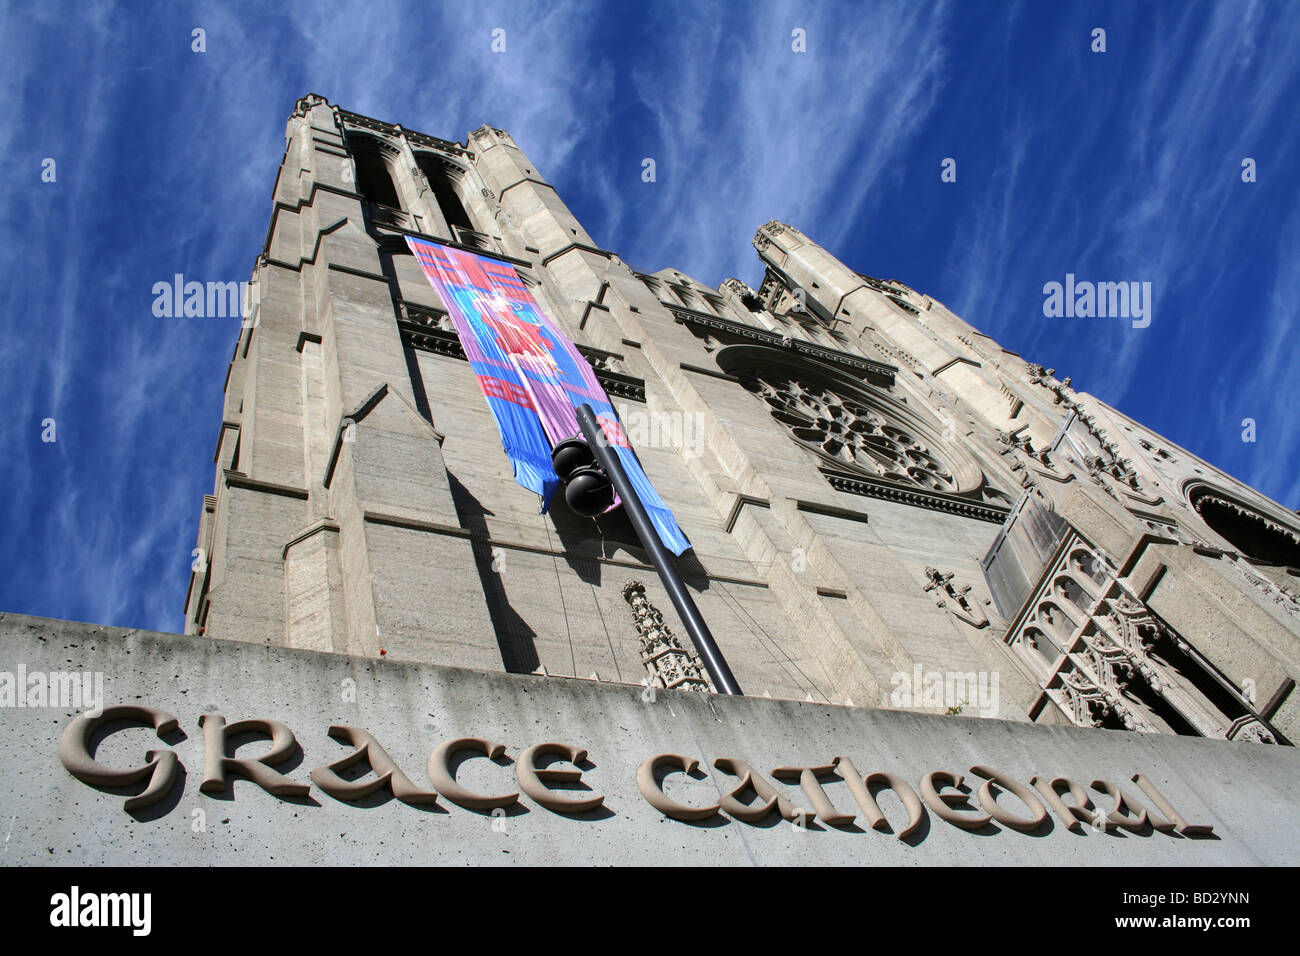 grace cathedral - Stock Image